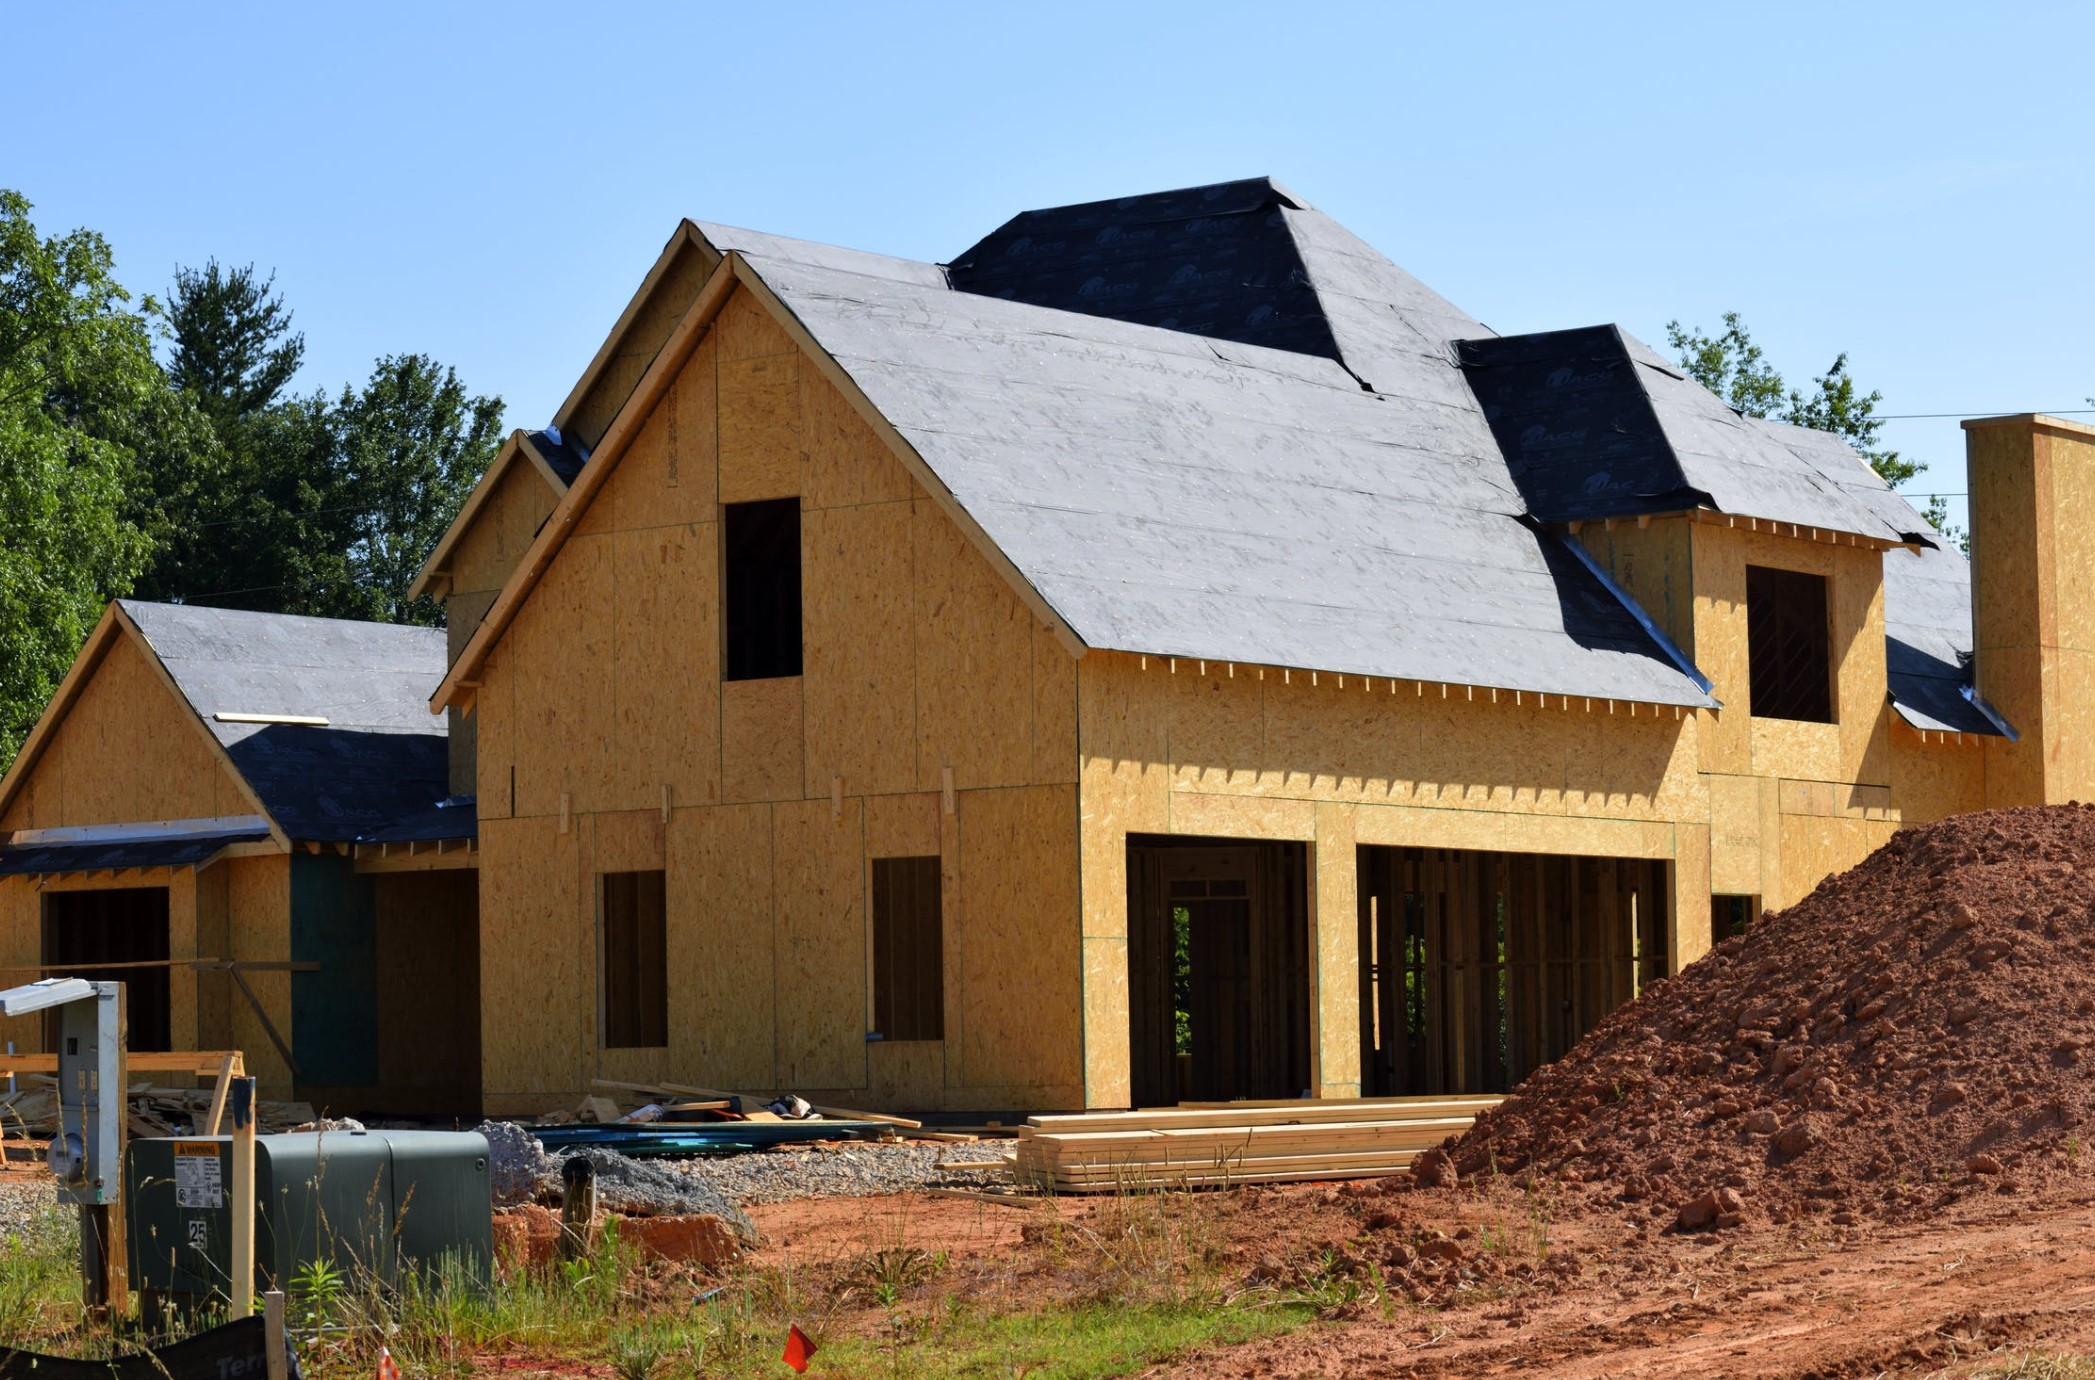 Top 4 Most Affordable Kinds of Roofing Materials